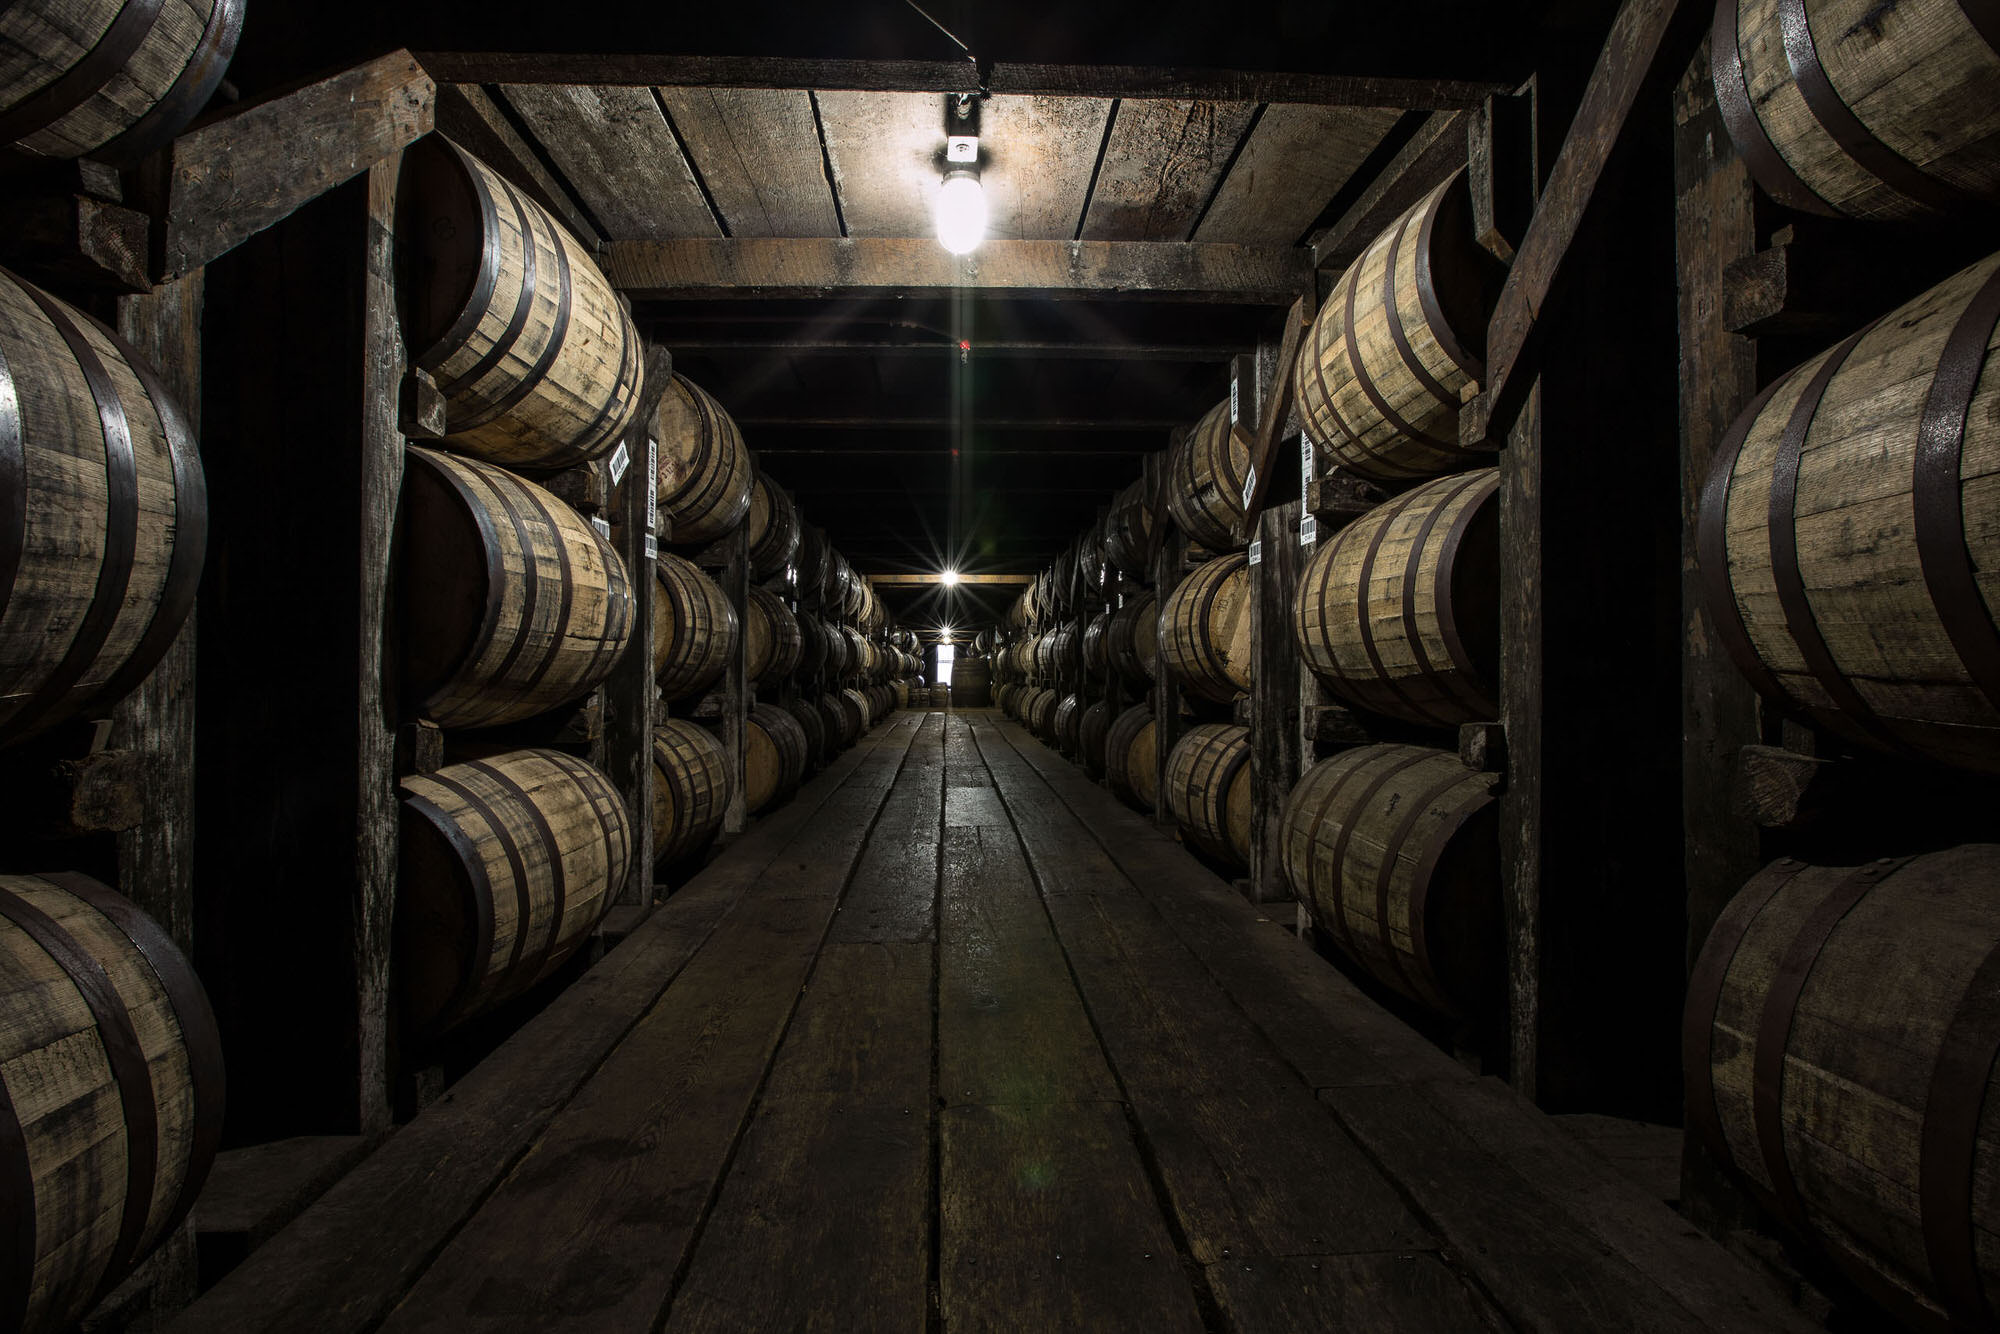 Rows of barrels at the Buffalo Trace Distillery in